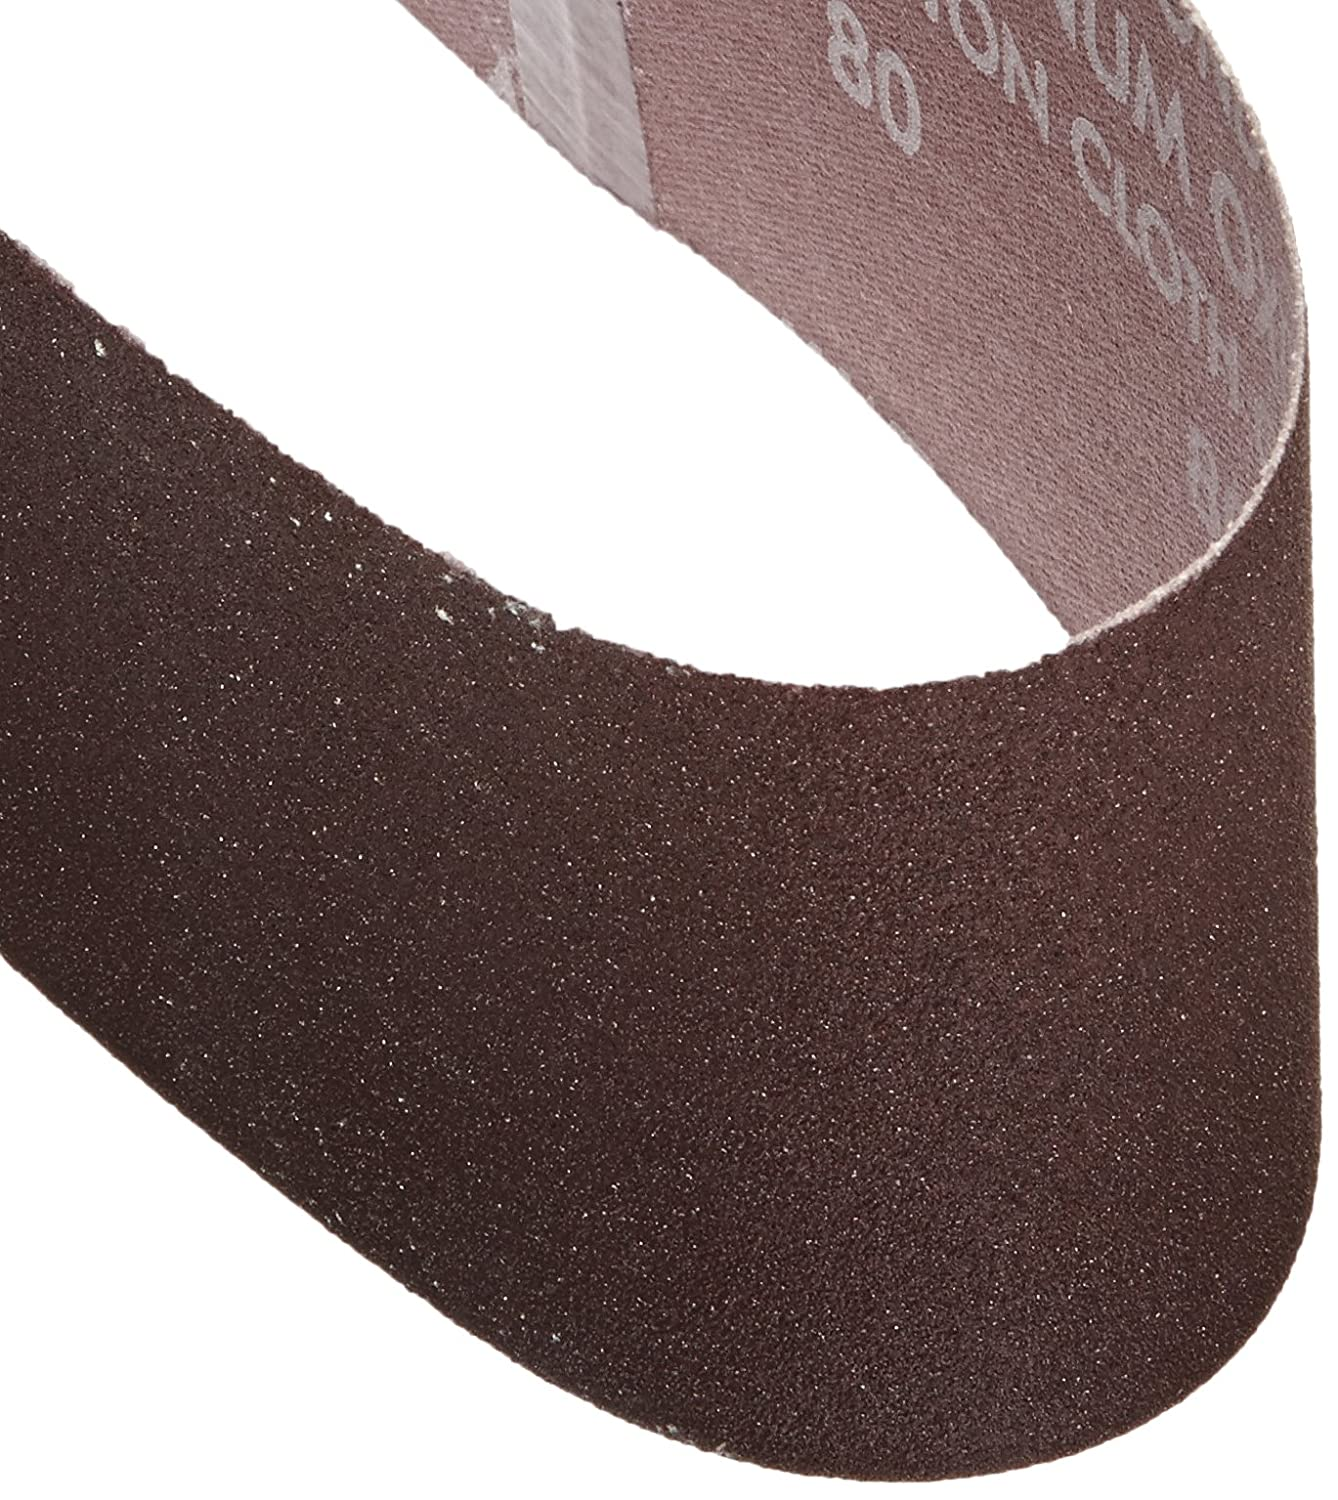 Norton 3X High Performance Portable Belt, Aluminum Oxide, 21' Length x 3' Width, Grit 80 Medium (Pack of 5) 21 Length x 3 Width SAIX7 02064